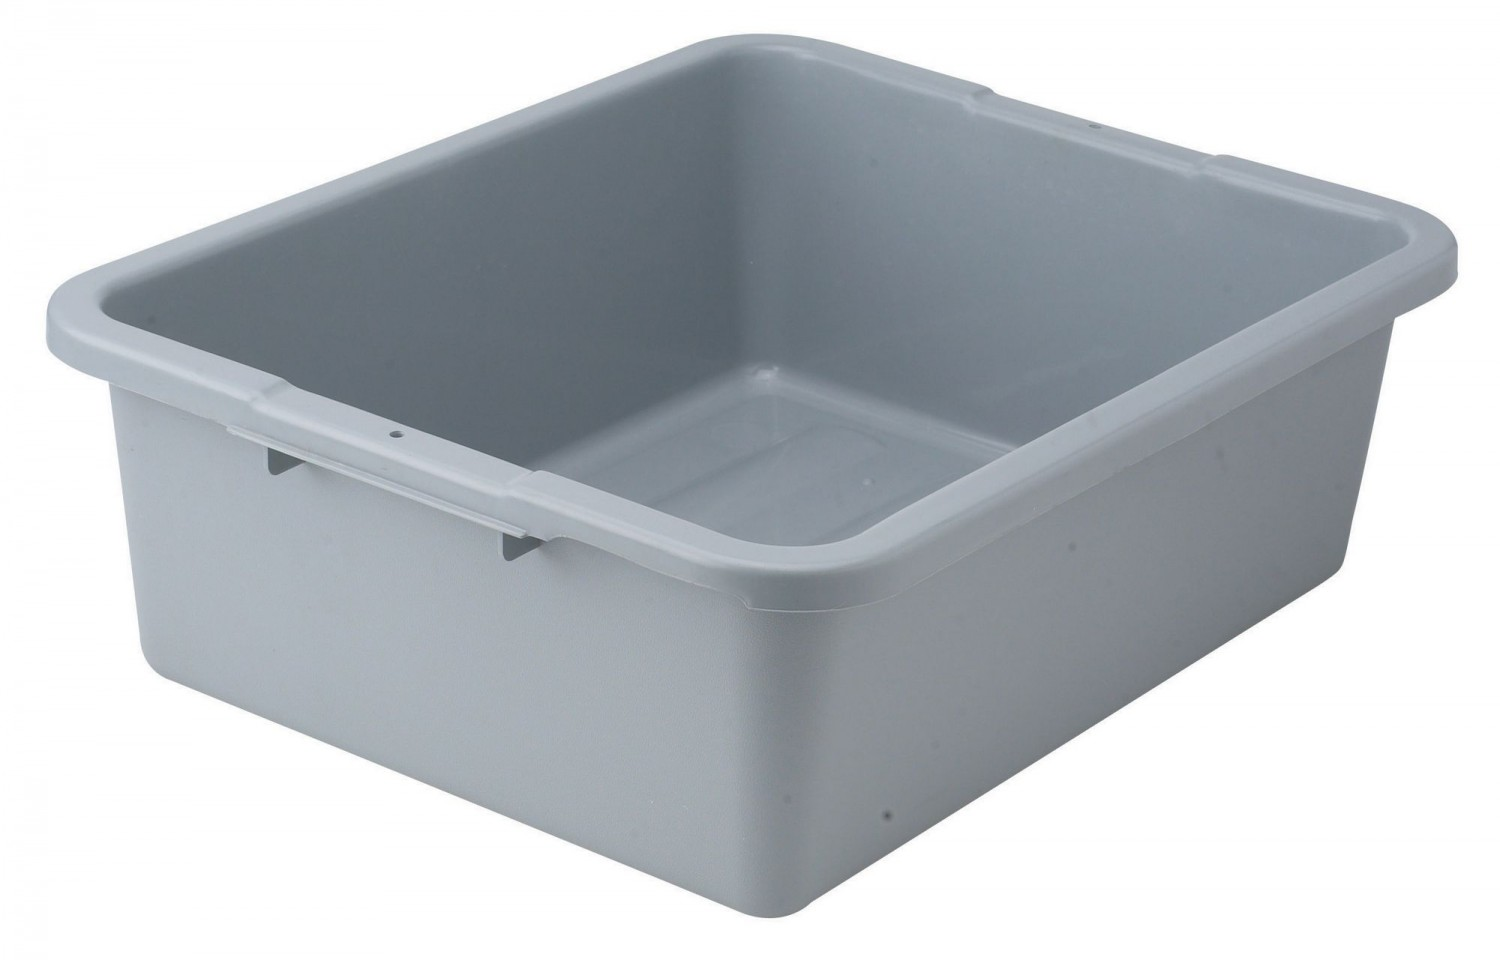 bus scientific carlisle comfort amazon tote utility tubs industrial com deep tub curve box dp black